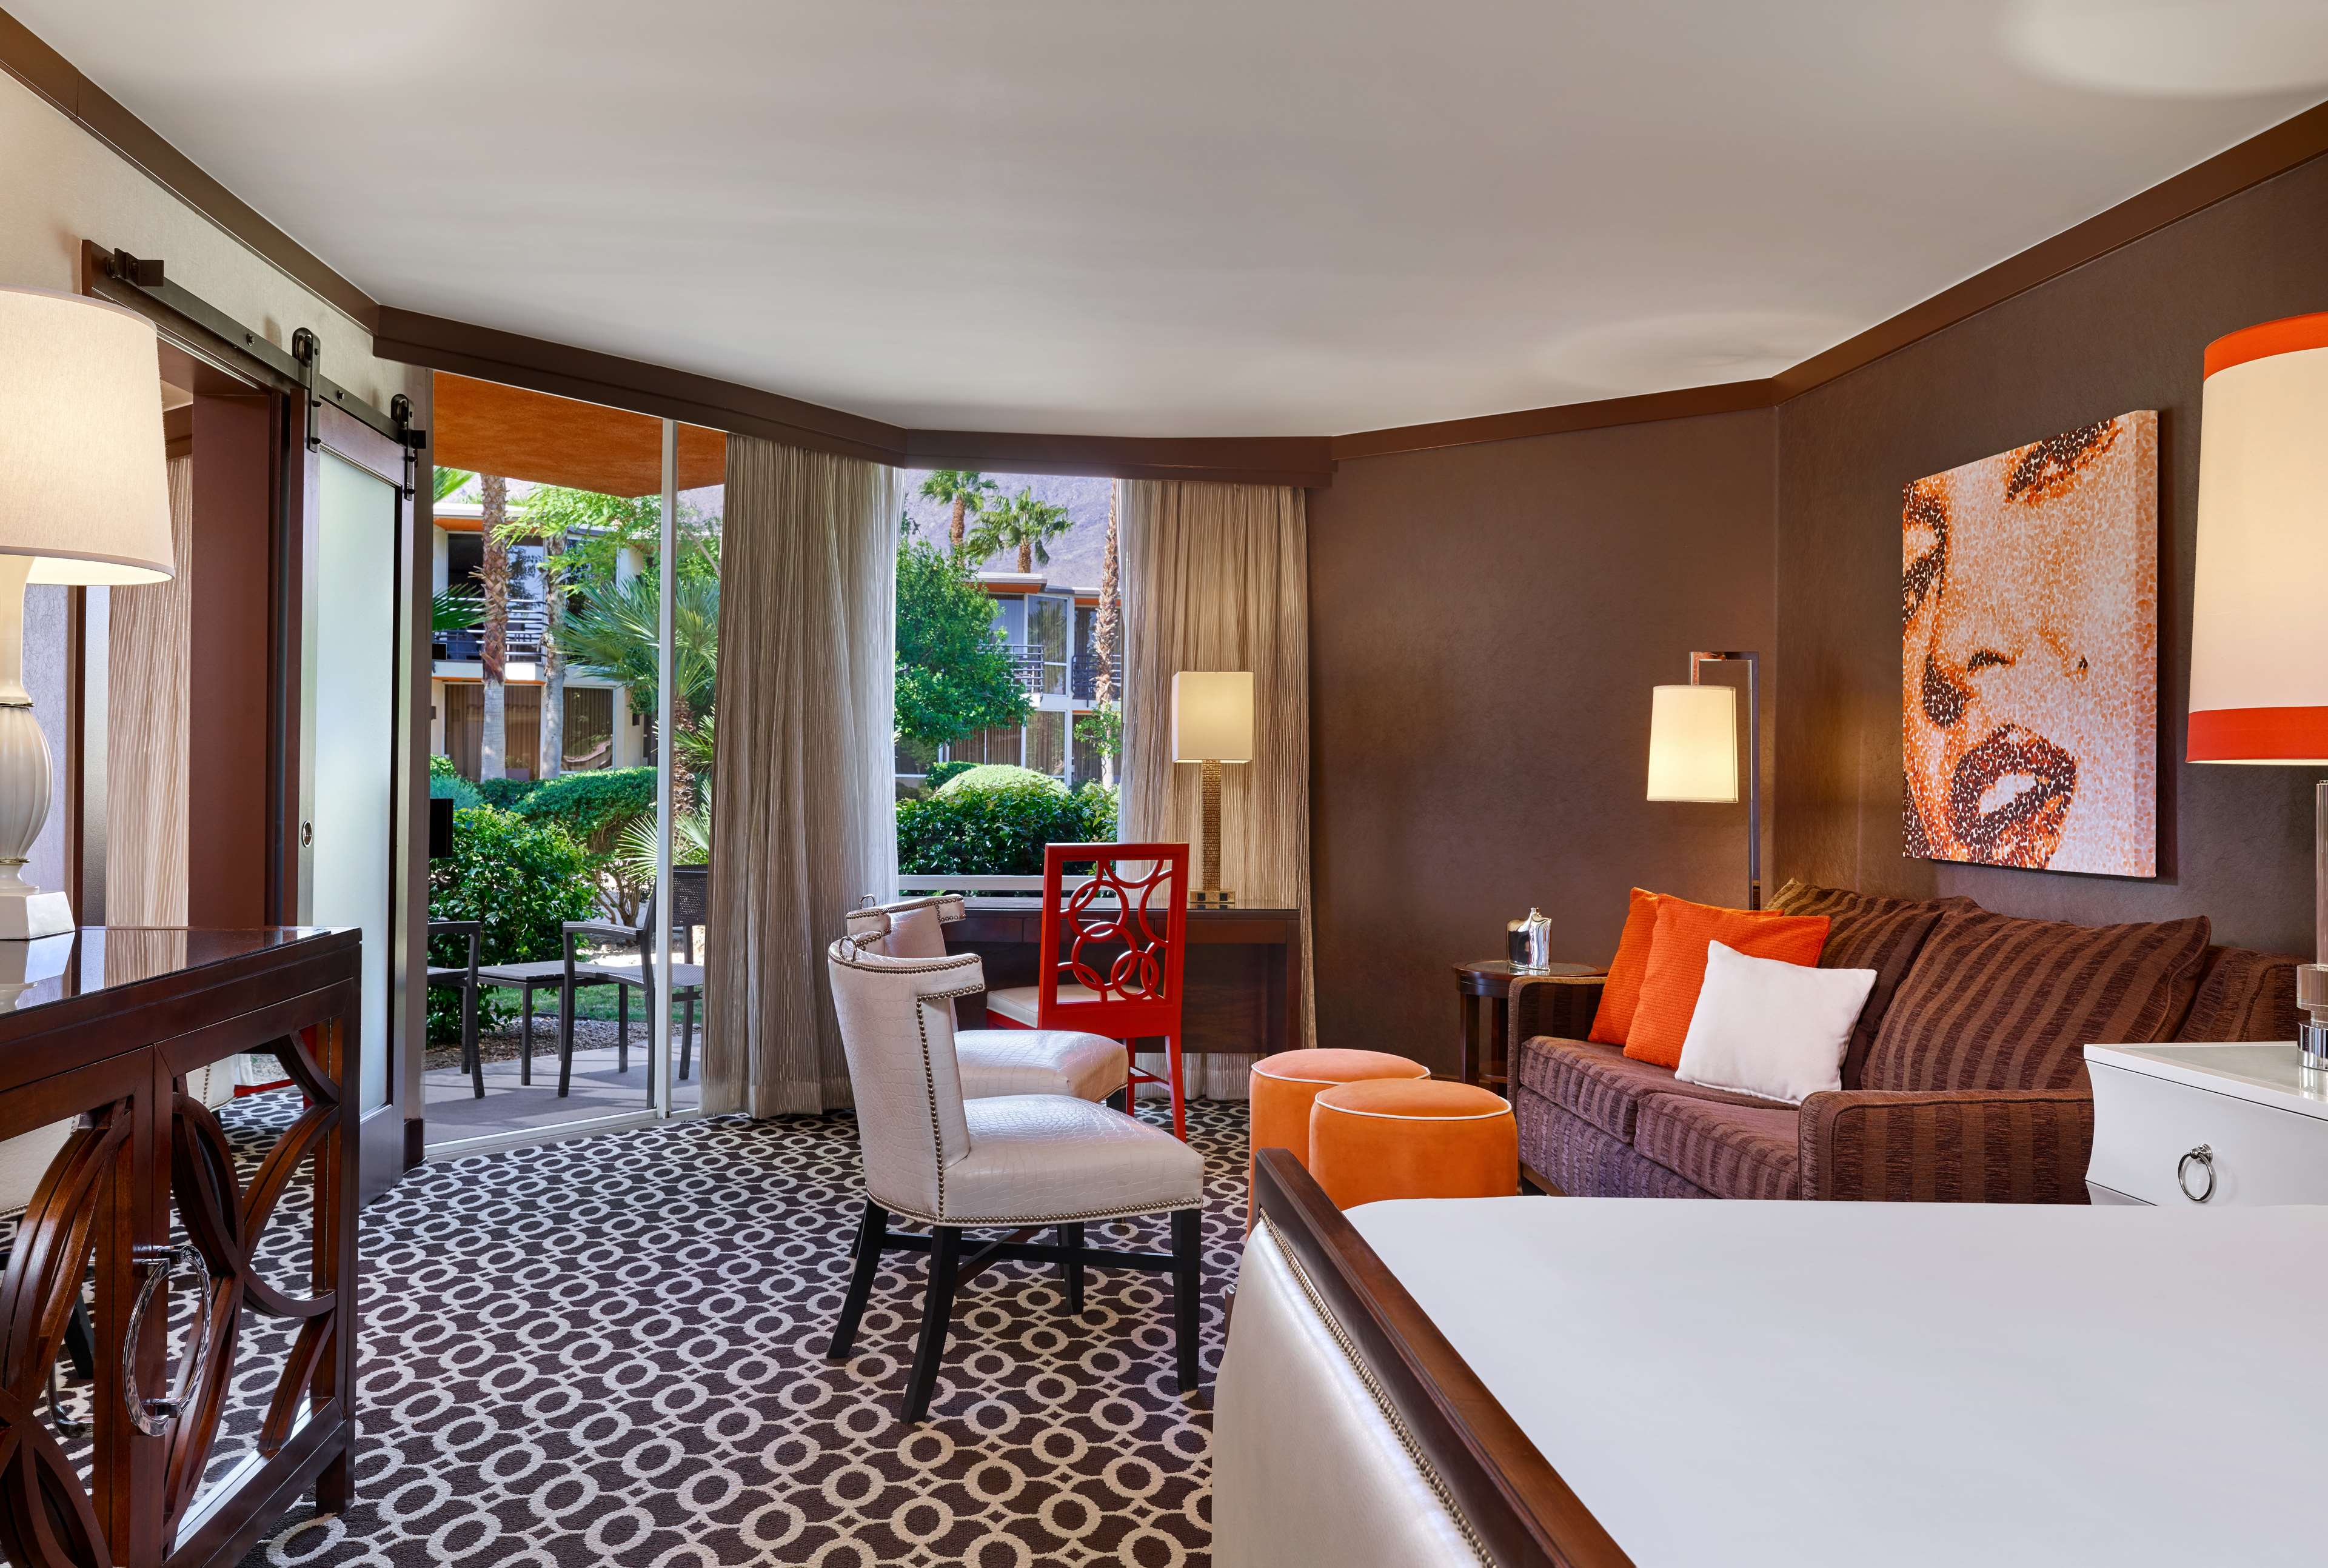 Palm Springs Riviera Resort Promo Codes December Palm Springs Riviera Resort Promo Codes in December are updated and verified. Today's top Palm Springs Riviera Resort Promo Code: Pick up 20% Off.